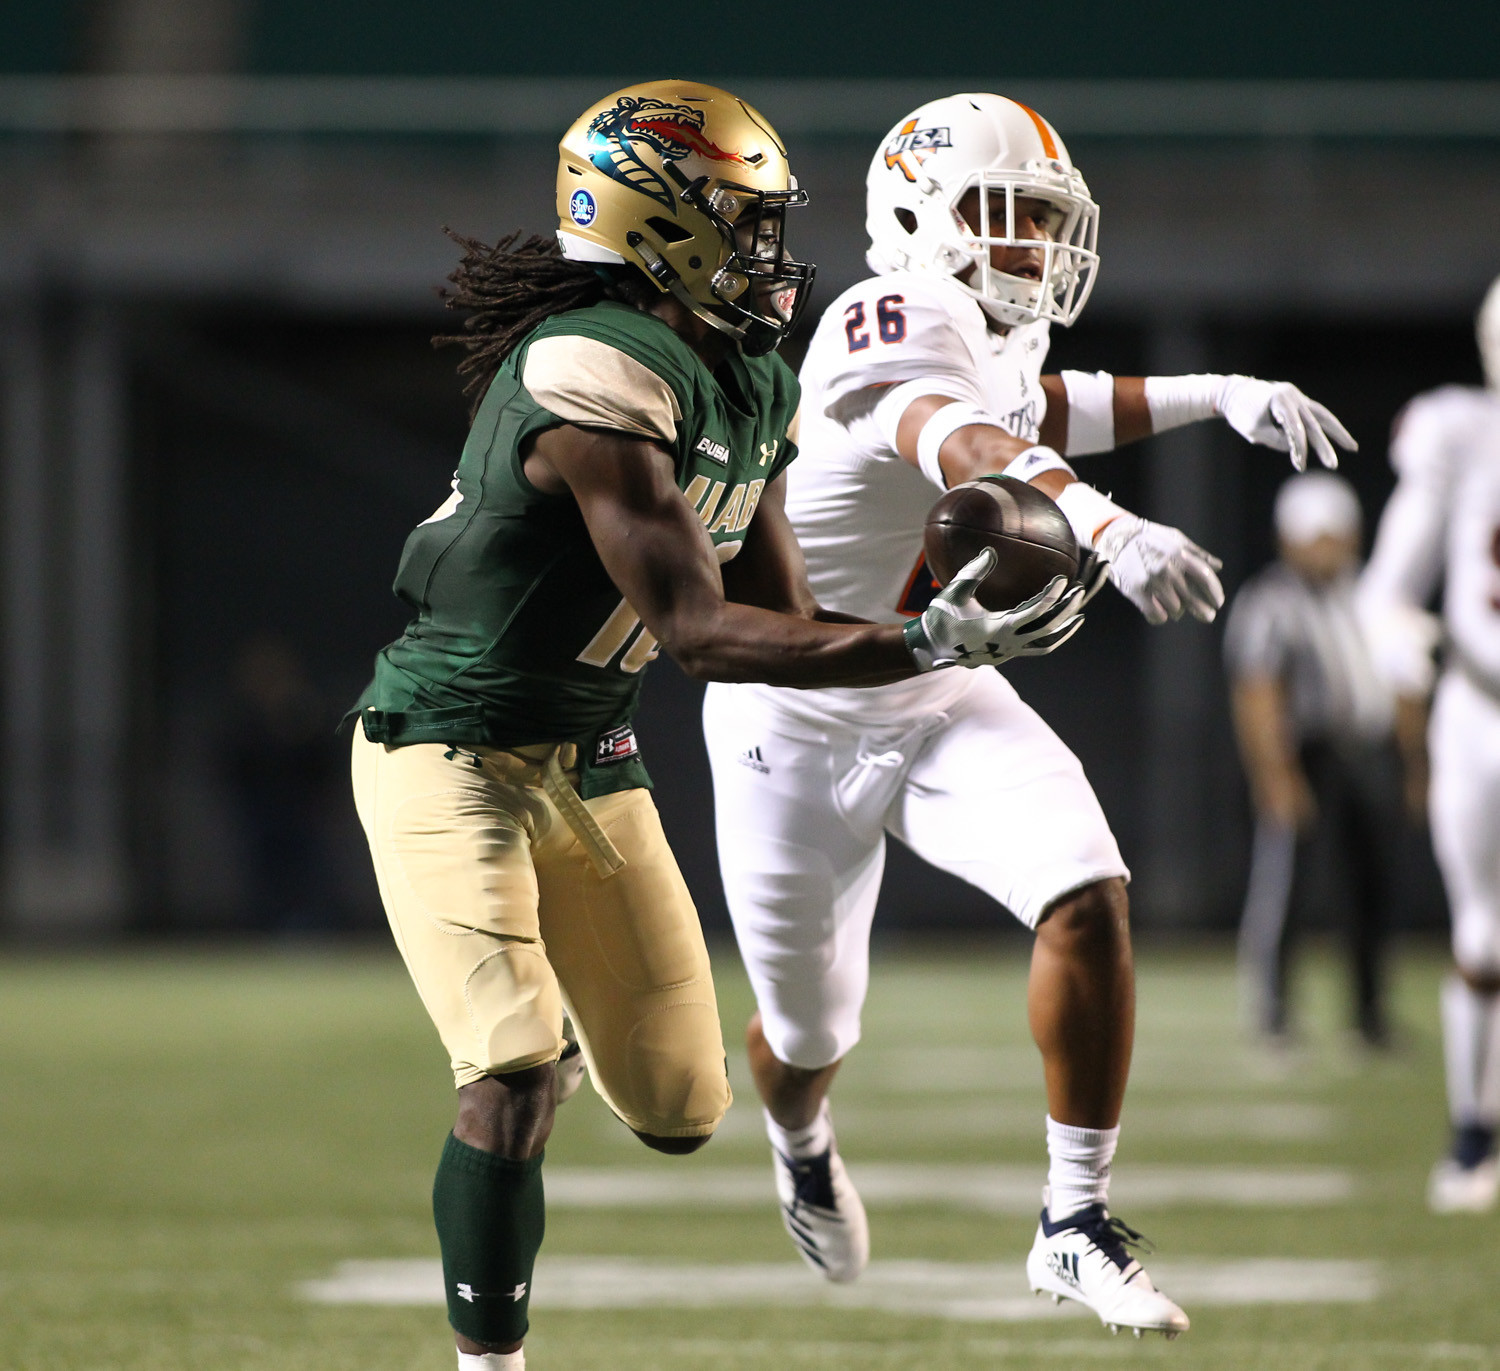 UAB wide receiver Kailon Carter catches a pass in front of UTSA cornerback Corey Mayfield Jr. and runs for a 1st quarter touchdown Legion Field in Birmingham, Ala., Saturday, Nov. 3, 2018.